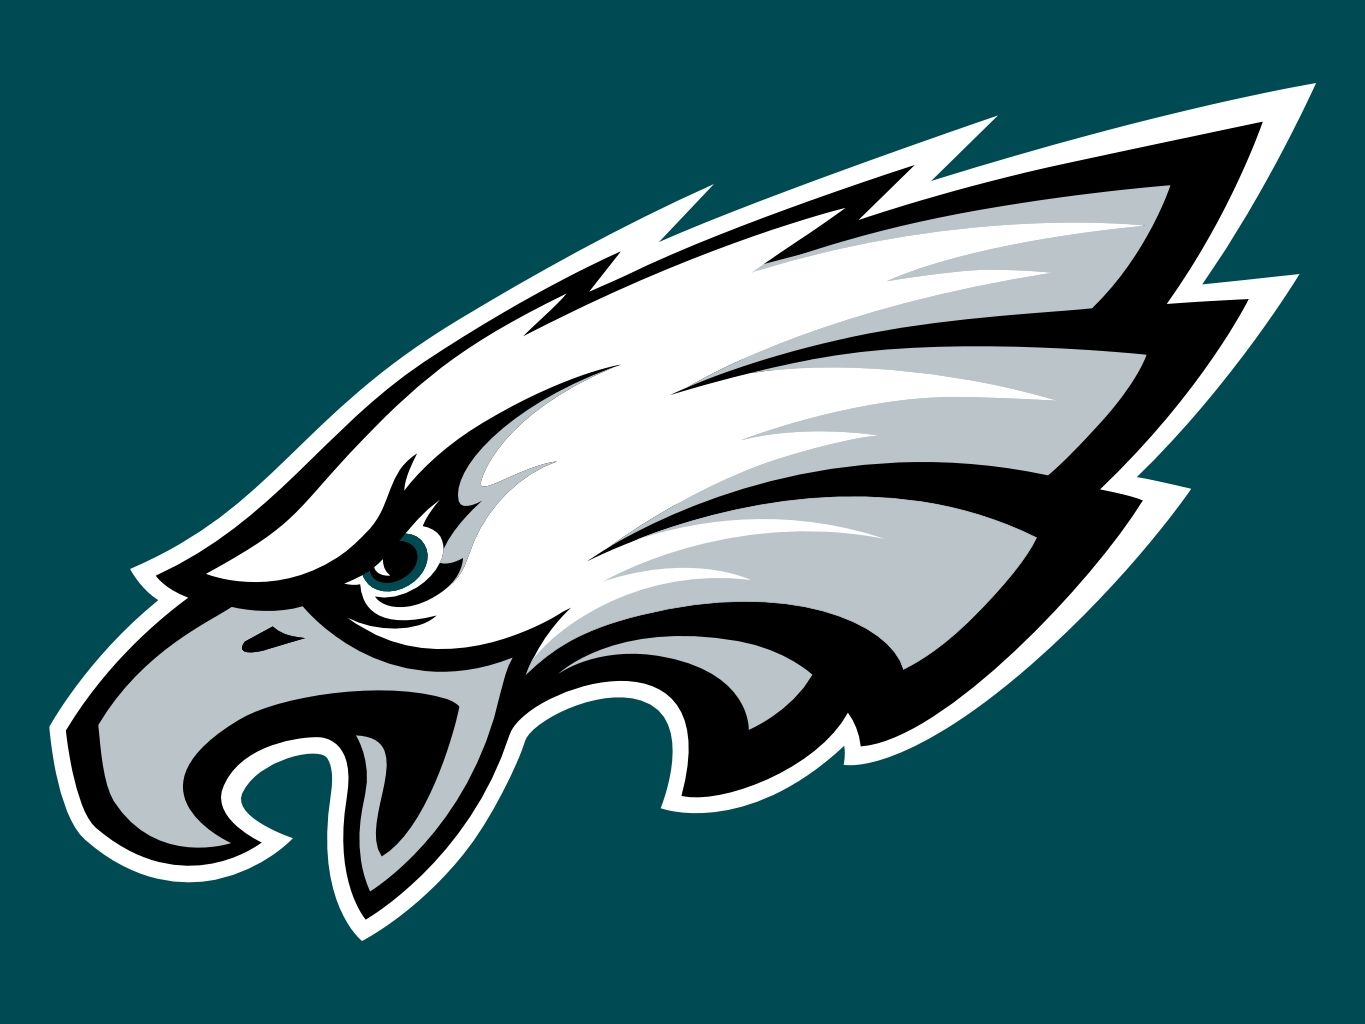 Eagles Logo - Free Philadelphia Eagles Logo, Download Free Clip Art, Free Clip Art ...